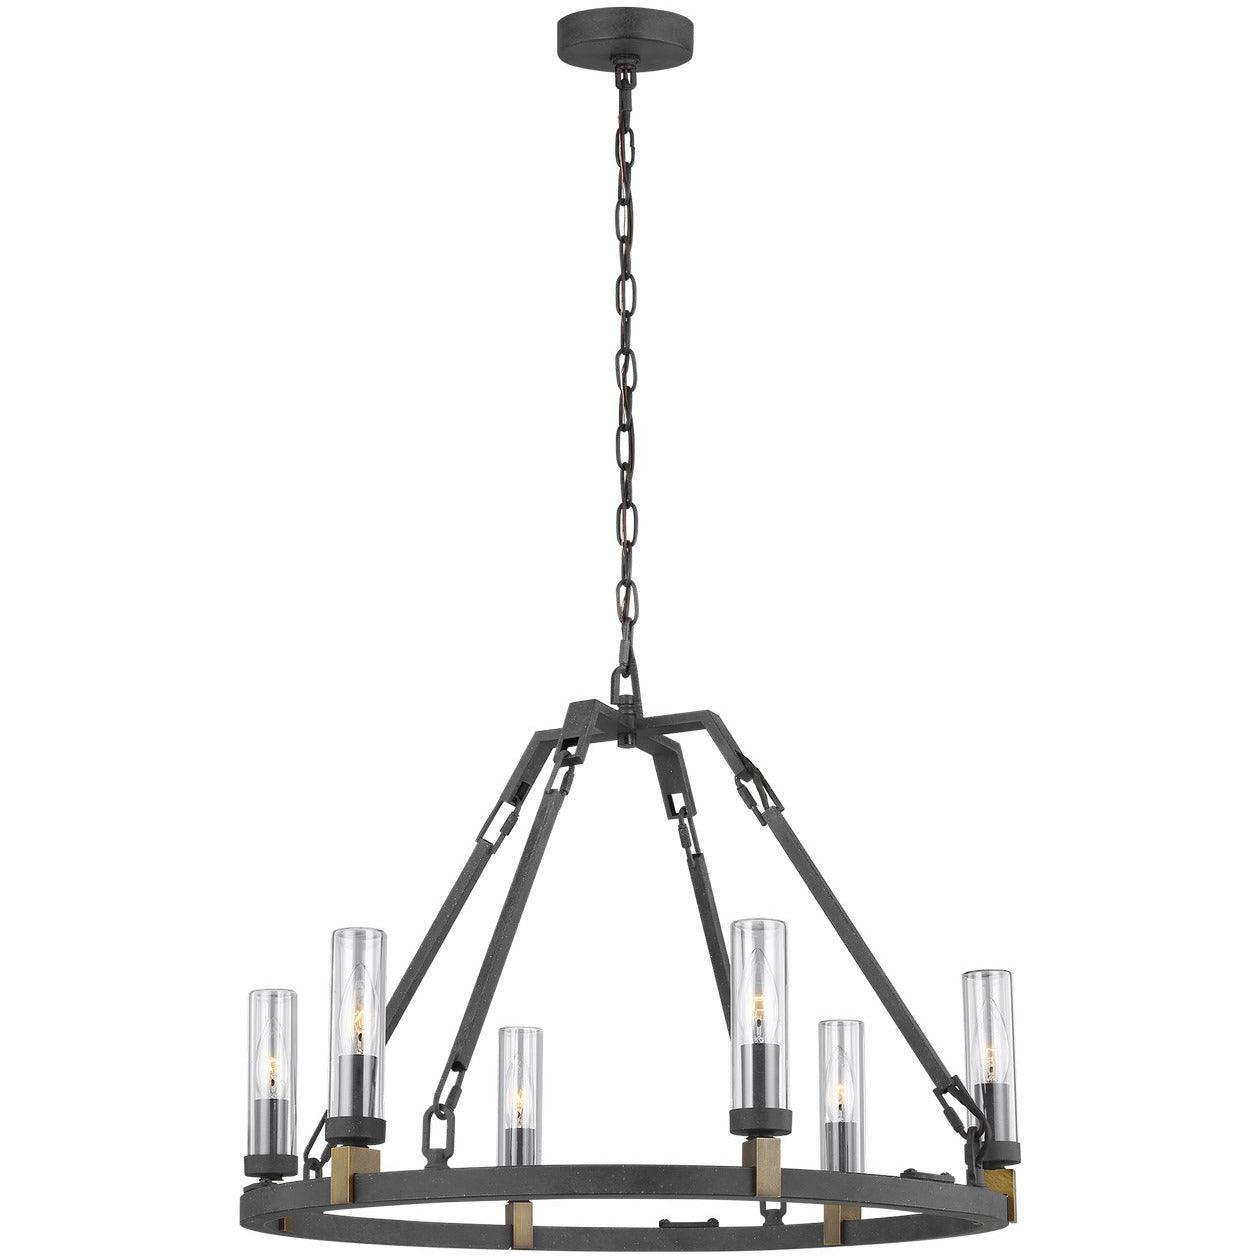 Feiss - OLF3213/6AF - Generation Lighting - Landen - Antique Forged Iron